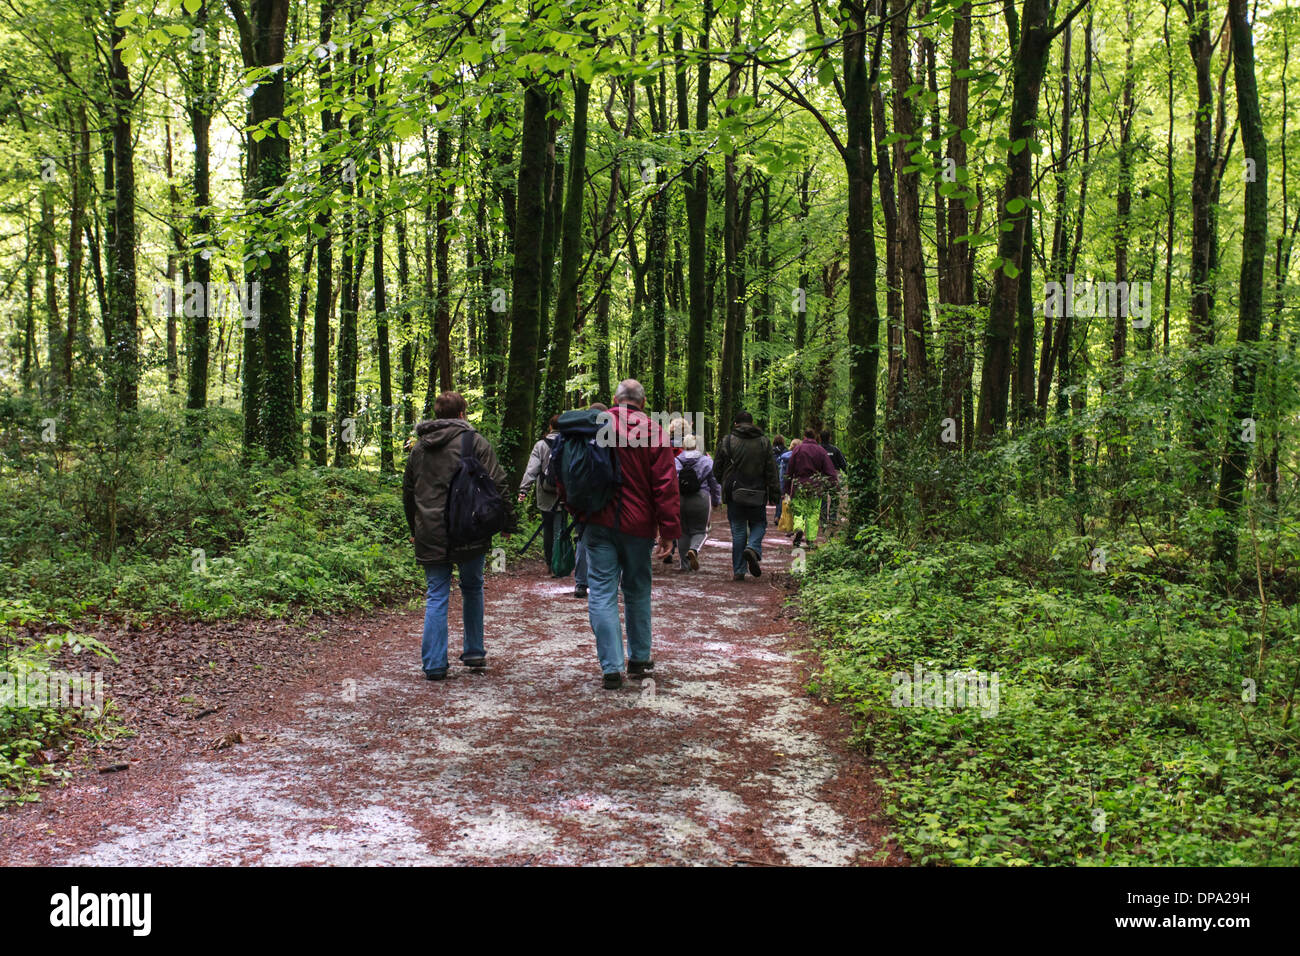 A group of walkers in forest or woodland at the Burren National Park, County Clare, Ireland Eire - Stock Image